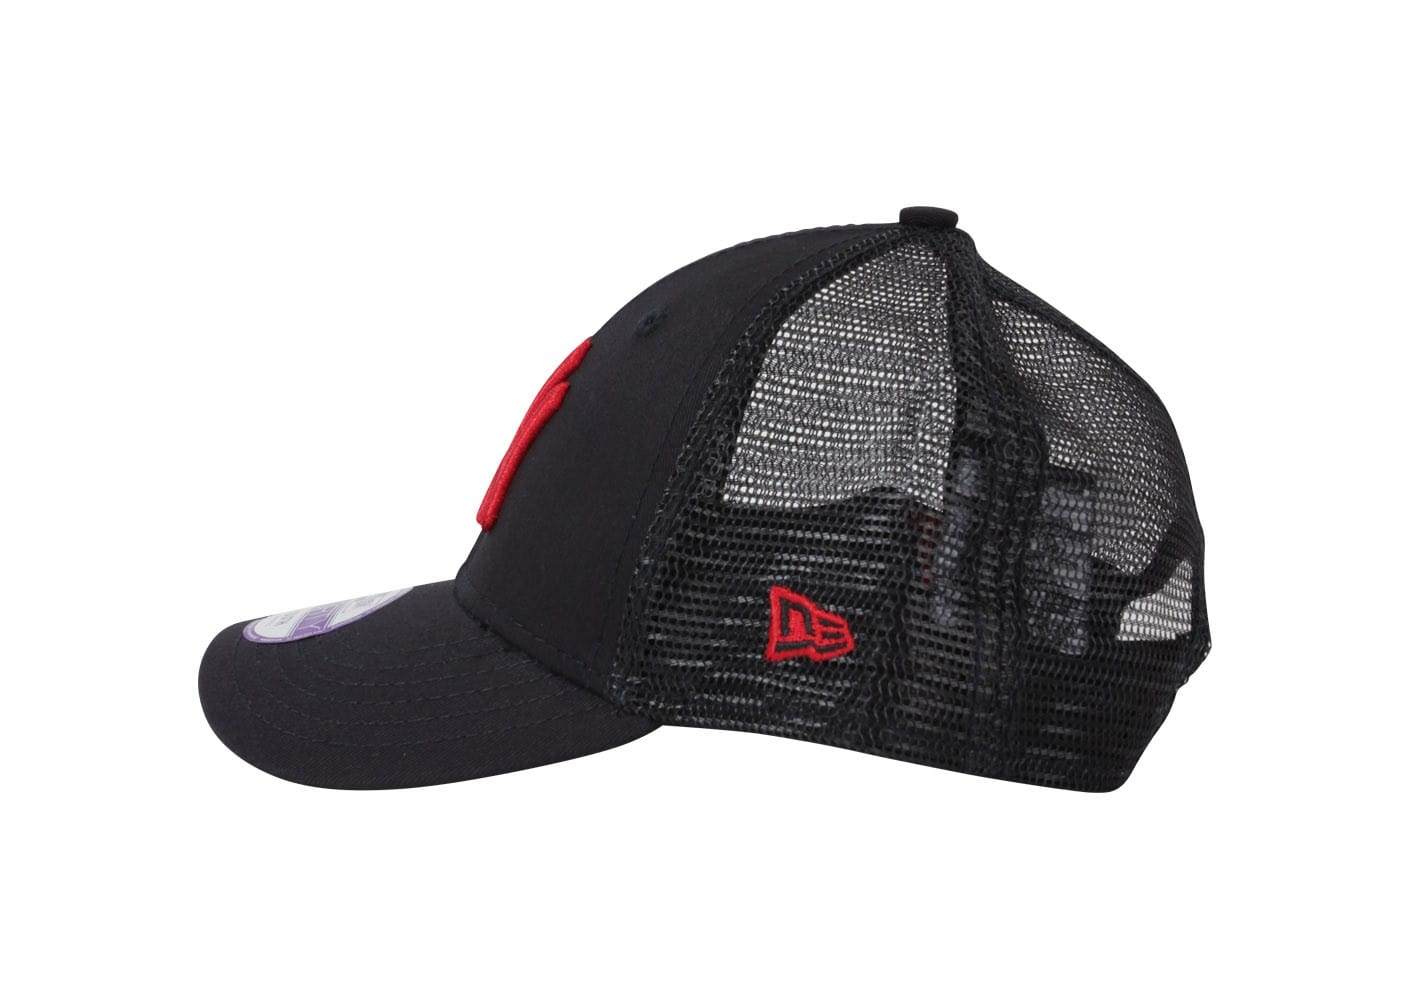 new era casquette trucker ny mesh bleu marine rouge casquettes chausport. Black Bedroom Furniture Sets. Home Design Ideas